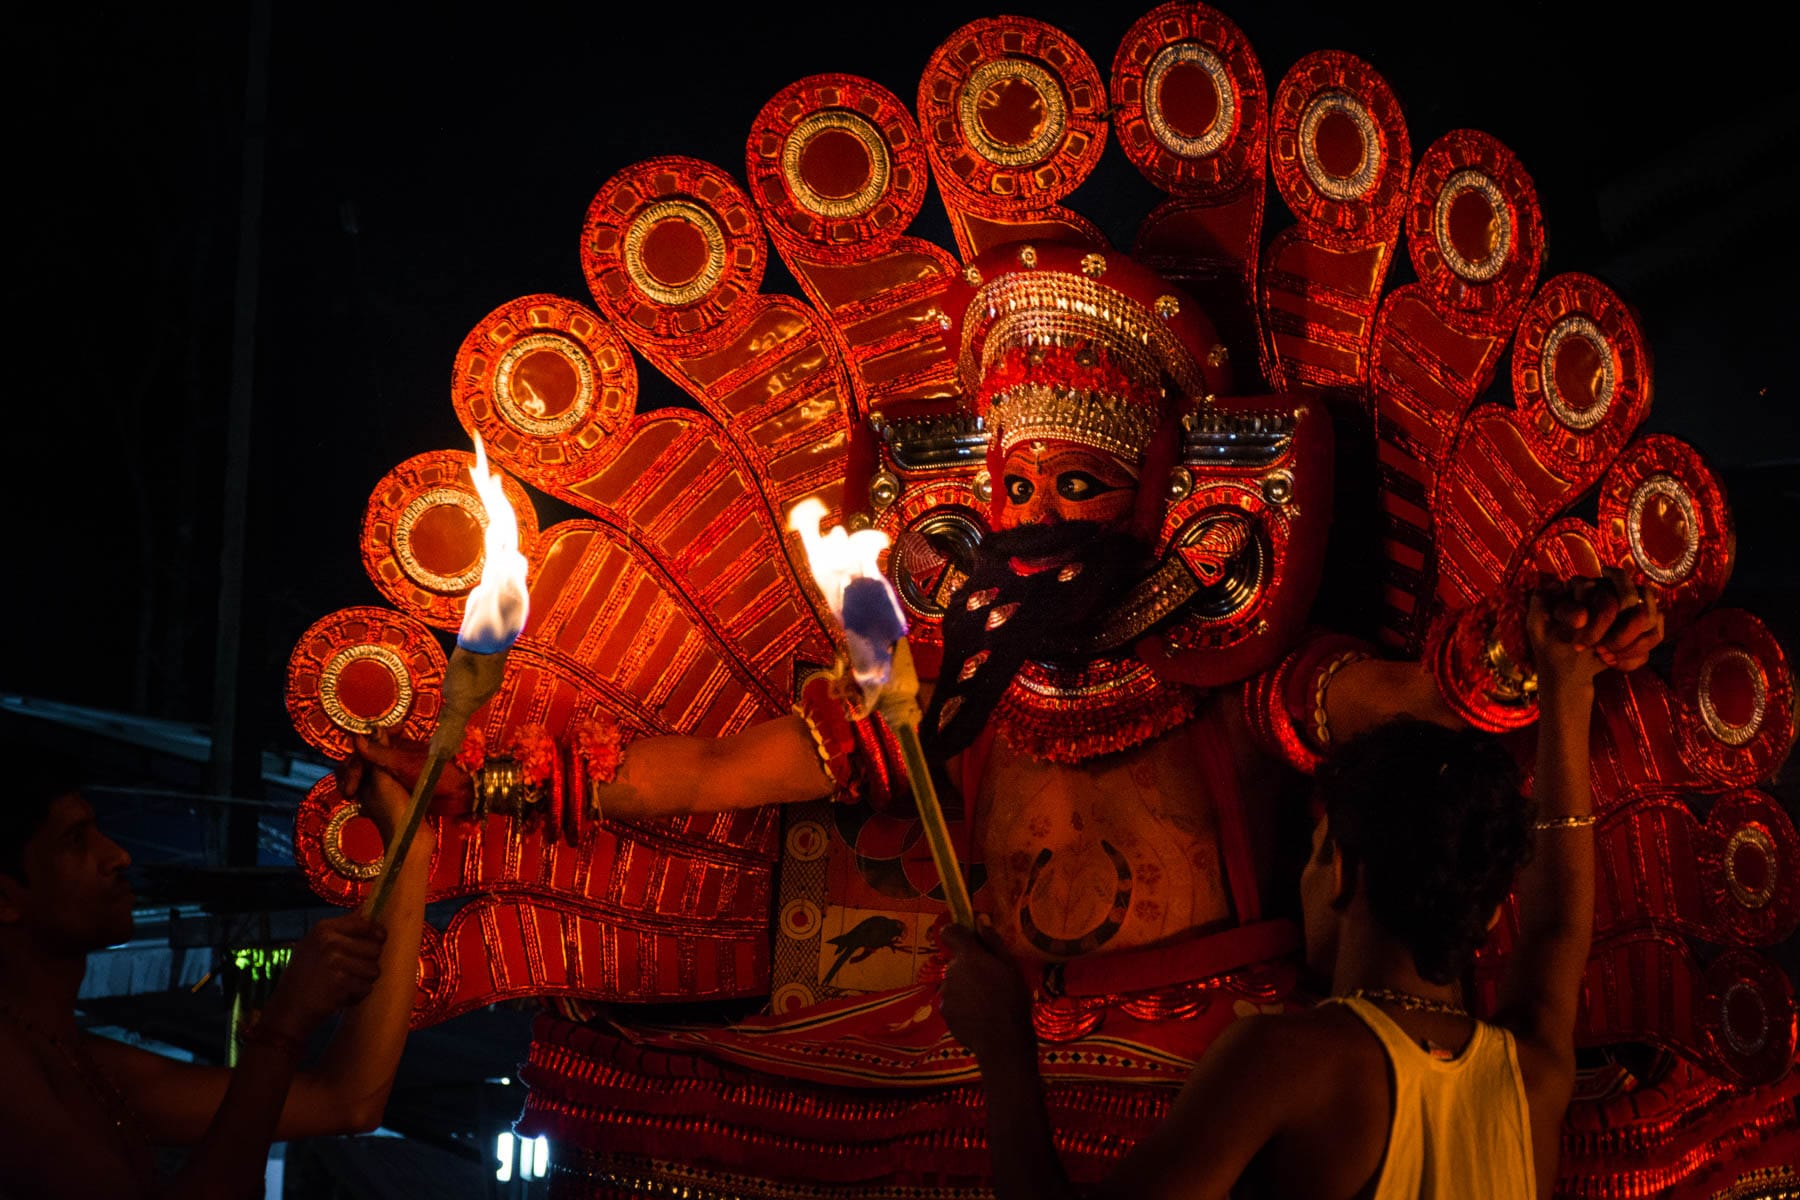 Kutty being supported by priests hands - Where to see Theyyam in Kerala, India - Lost With Purpose